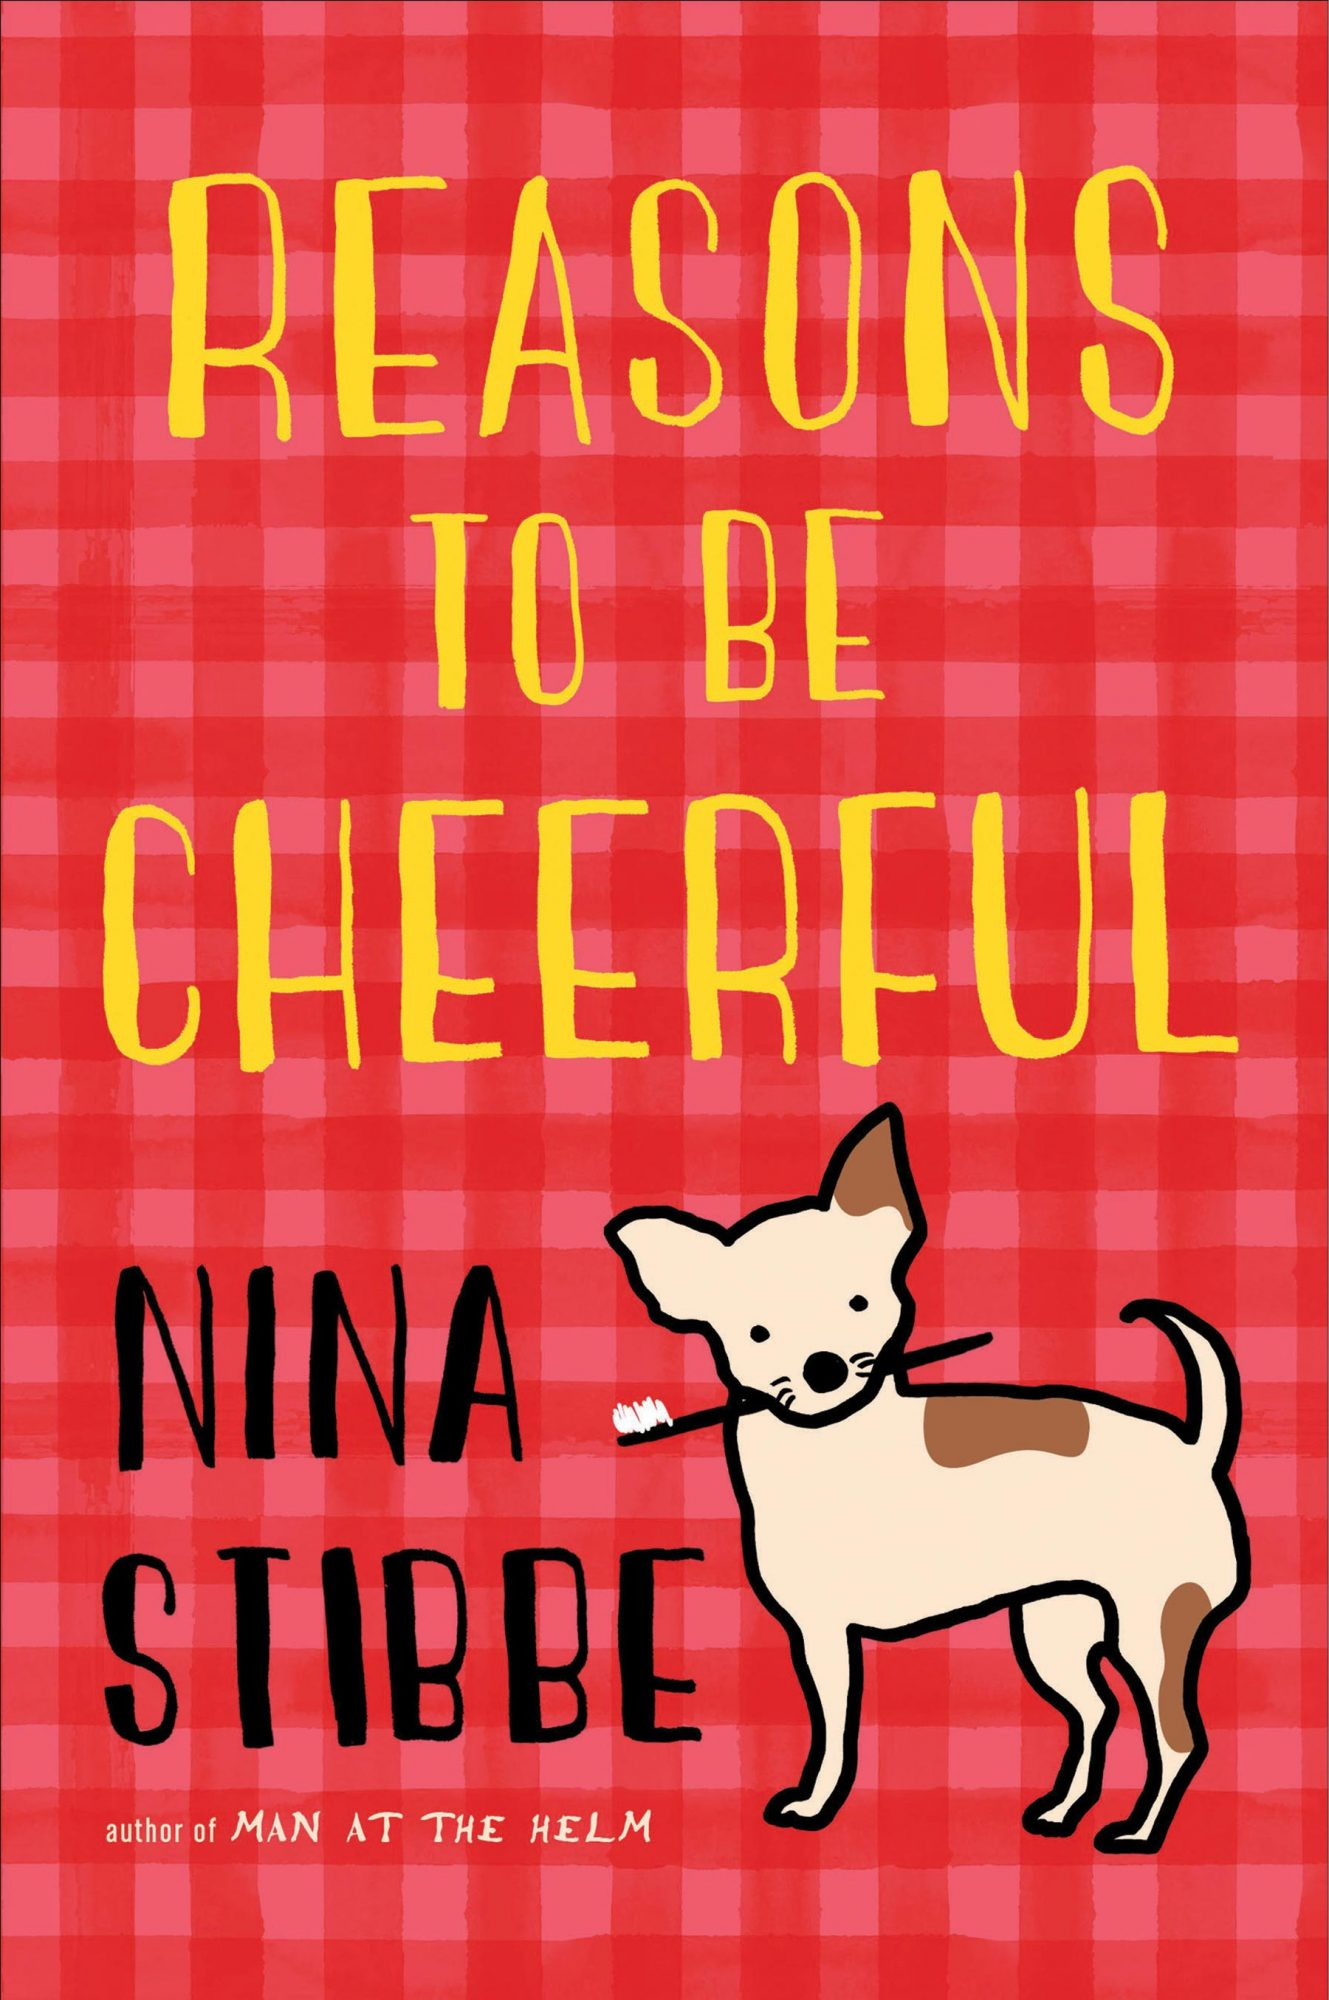 Reasons To Be Cheerful (2019)Author: Nina Stibbe